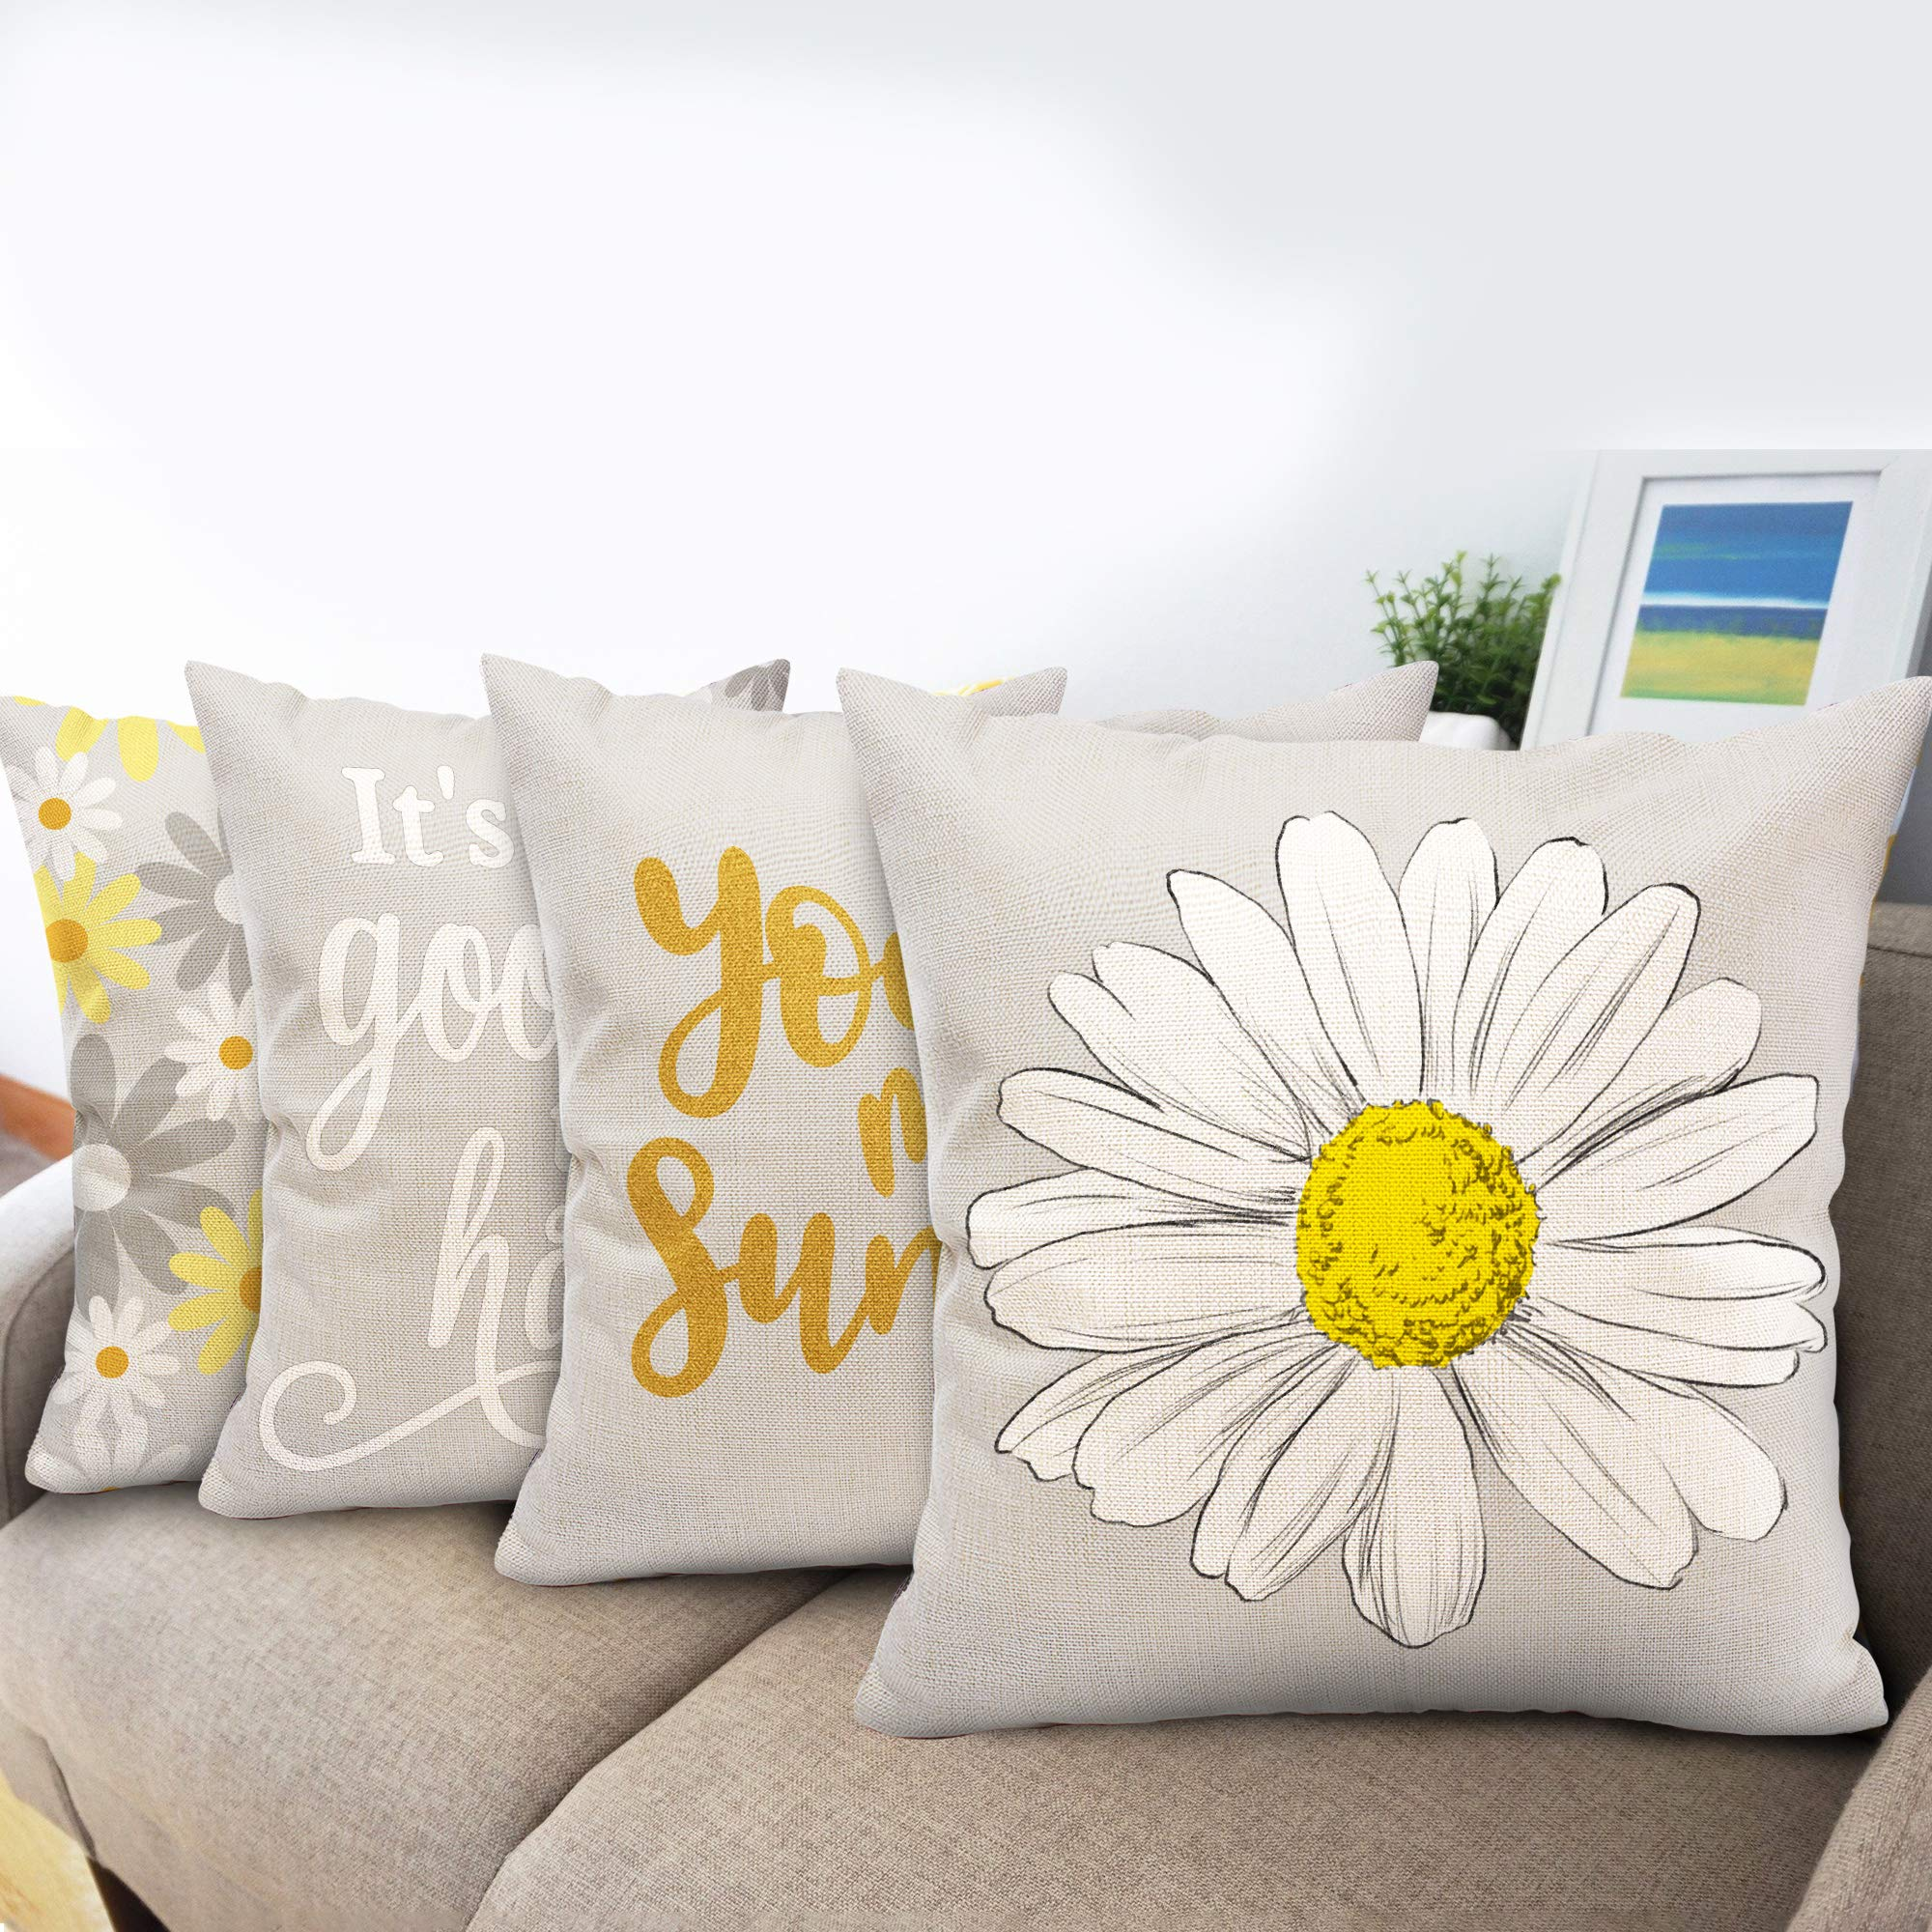 Hexagram Decorative Yellow and Grey Pillow Covers 16 x 16, Summer Yellow Throw Pillow Covers Set of 4 Sunflower Room Decor for Living Room Couch Sofa Patio Cushion Linen Outdoor Yellow Gray Home Decor